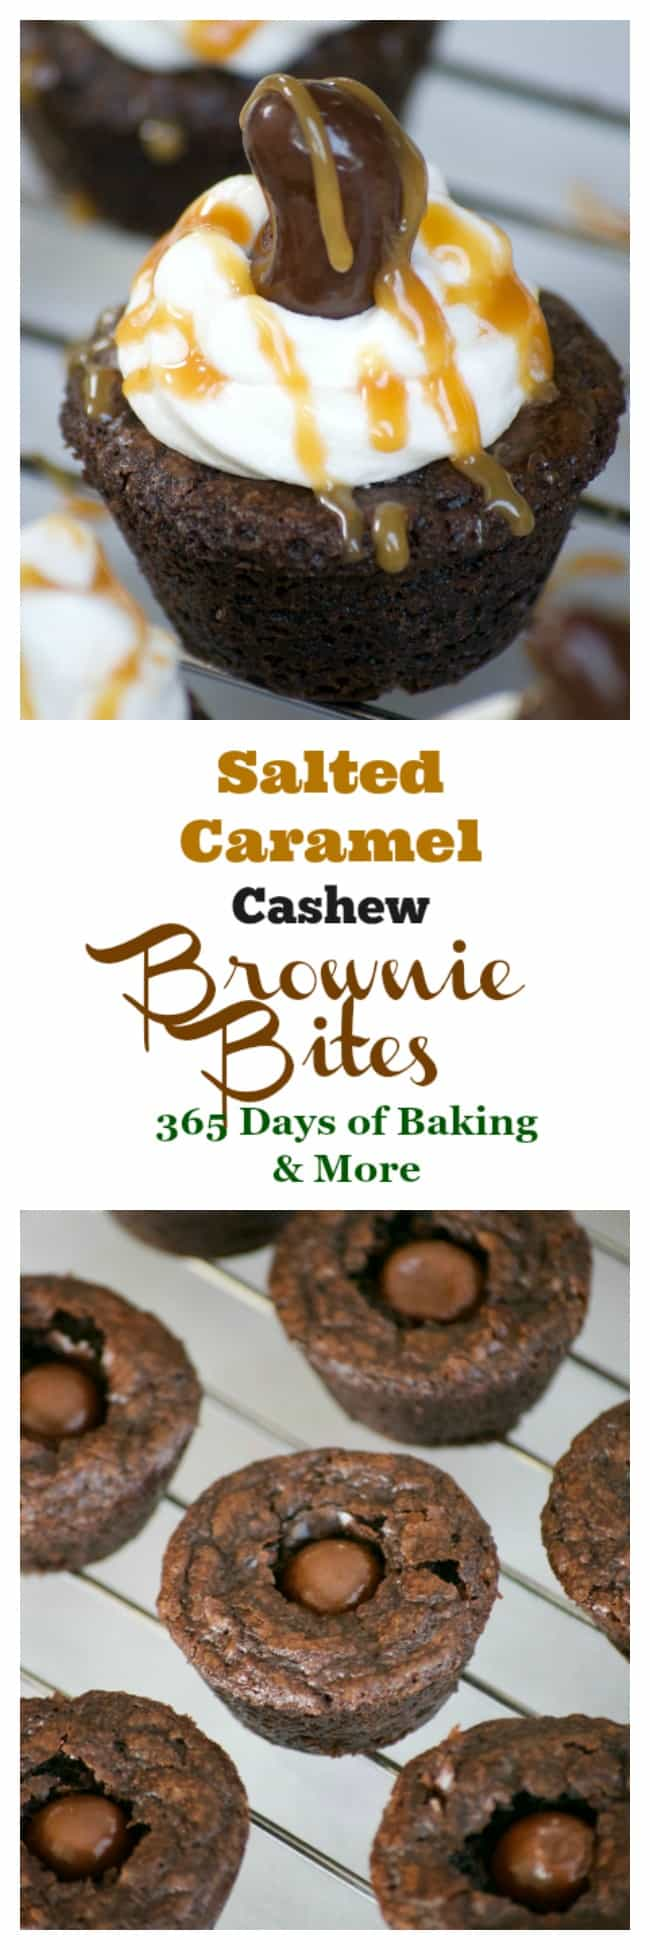 Salted Caramel Cashew Brownie Bites with a Marich Salted Caramel inside, topped with vanilla buttercream and a Marich Cashew are a great bite-sized treat!